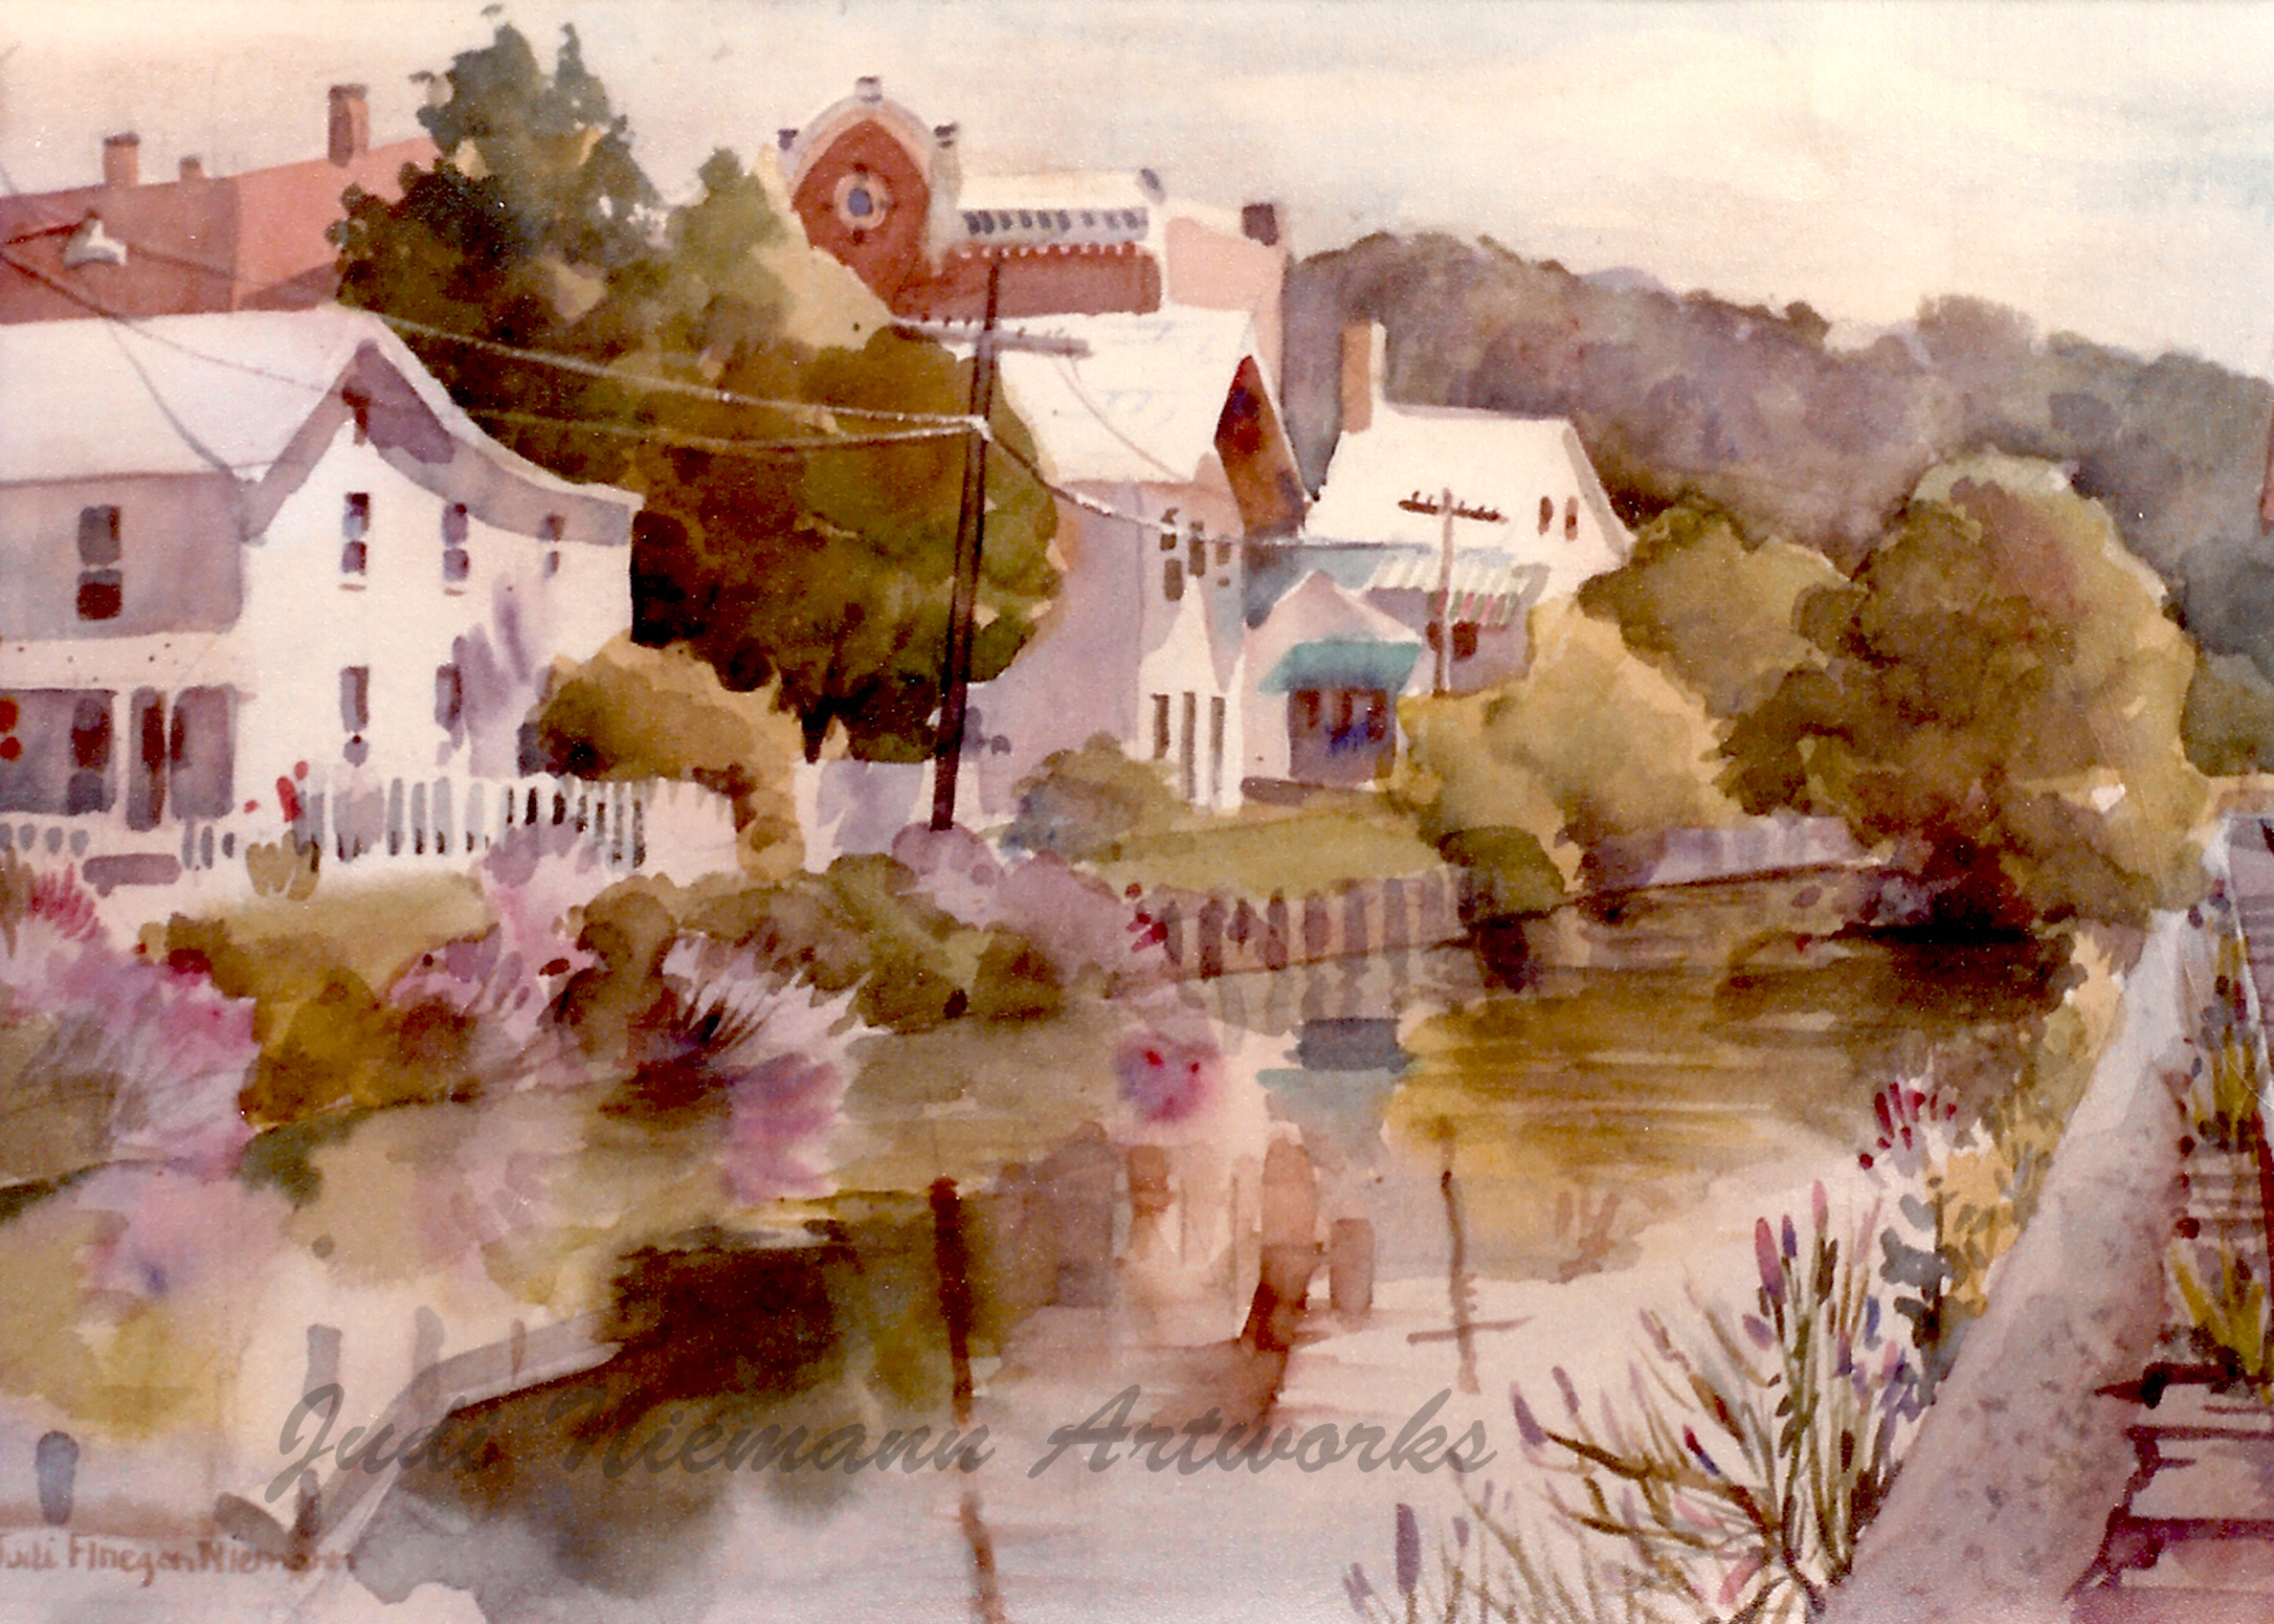 Canal at Lambertville, New Jersey